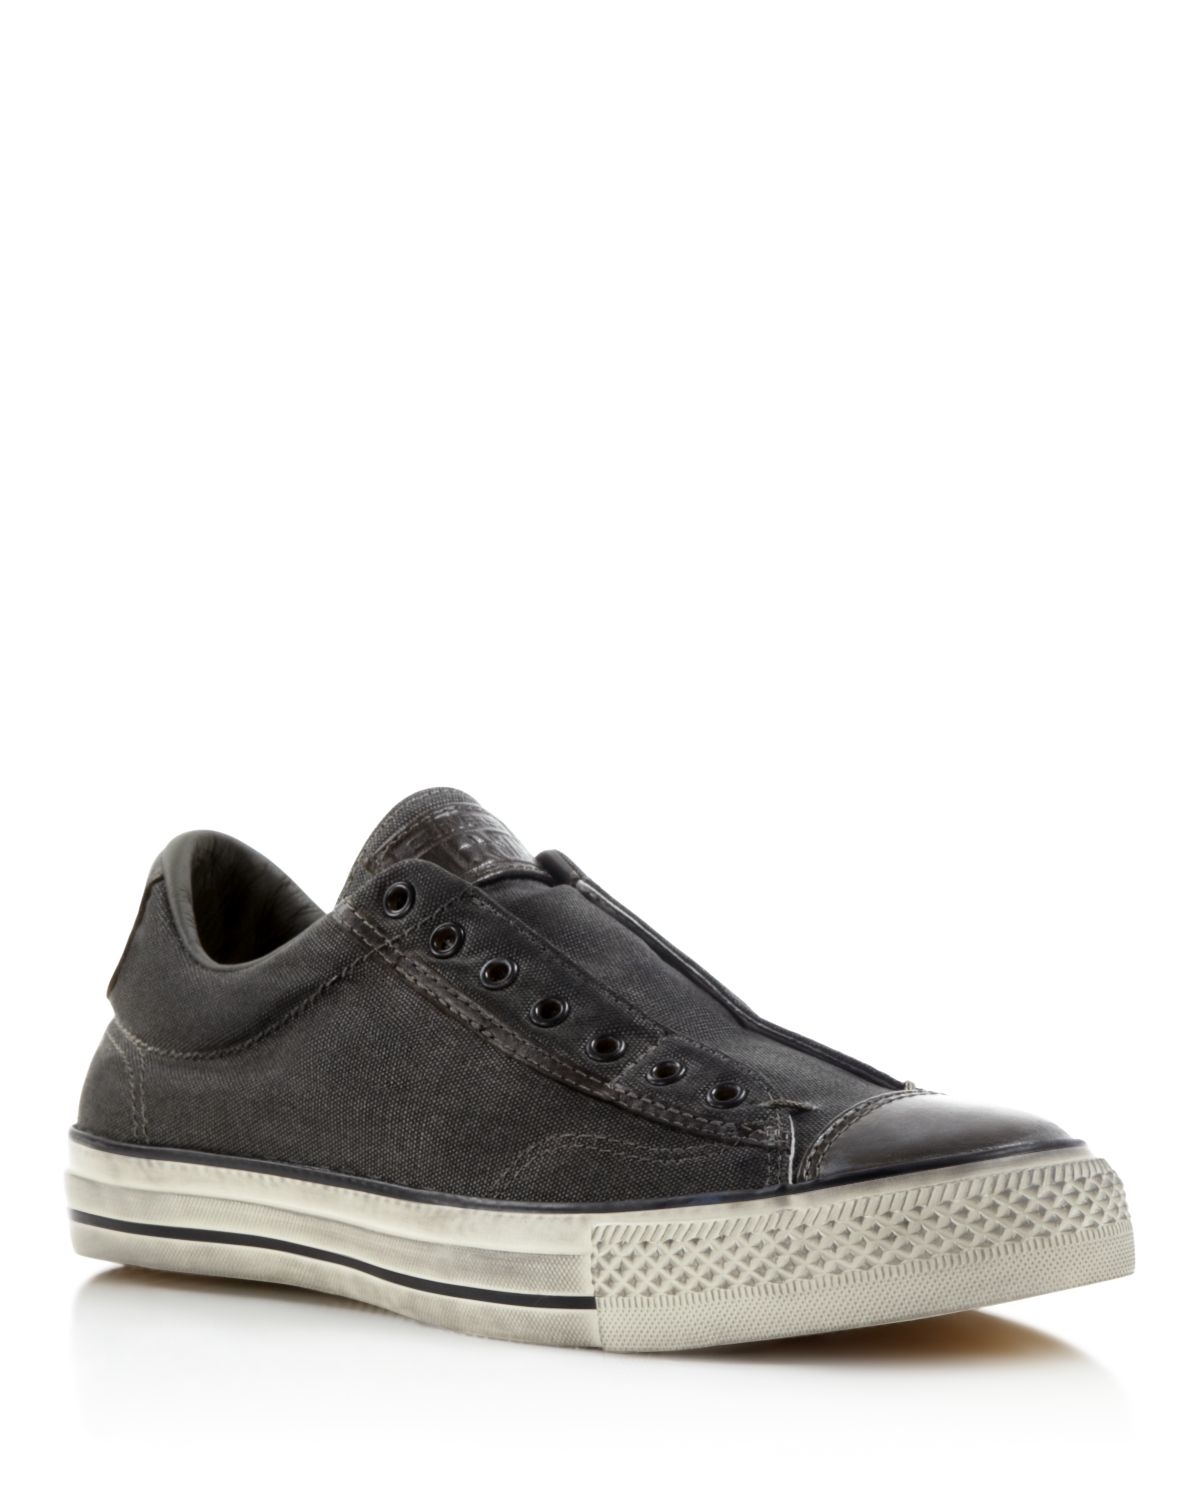 Lyst converse all star vintage slip on sneakers in gray - Graue converse ...